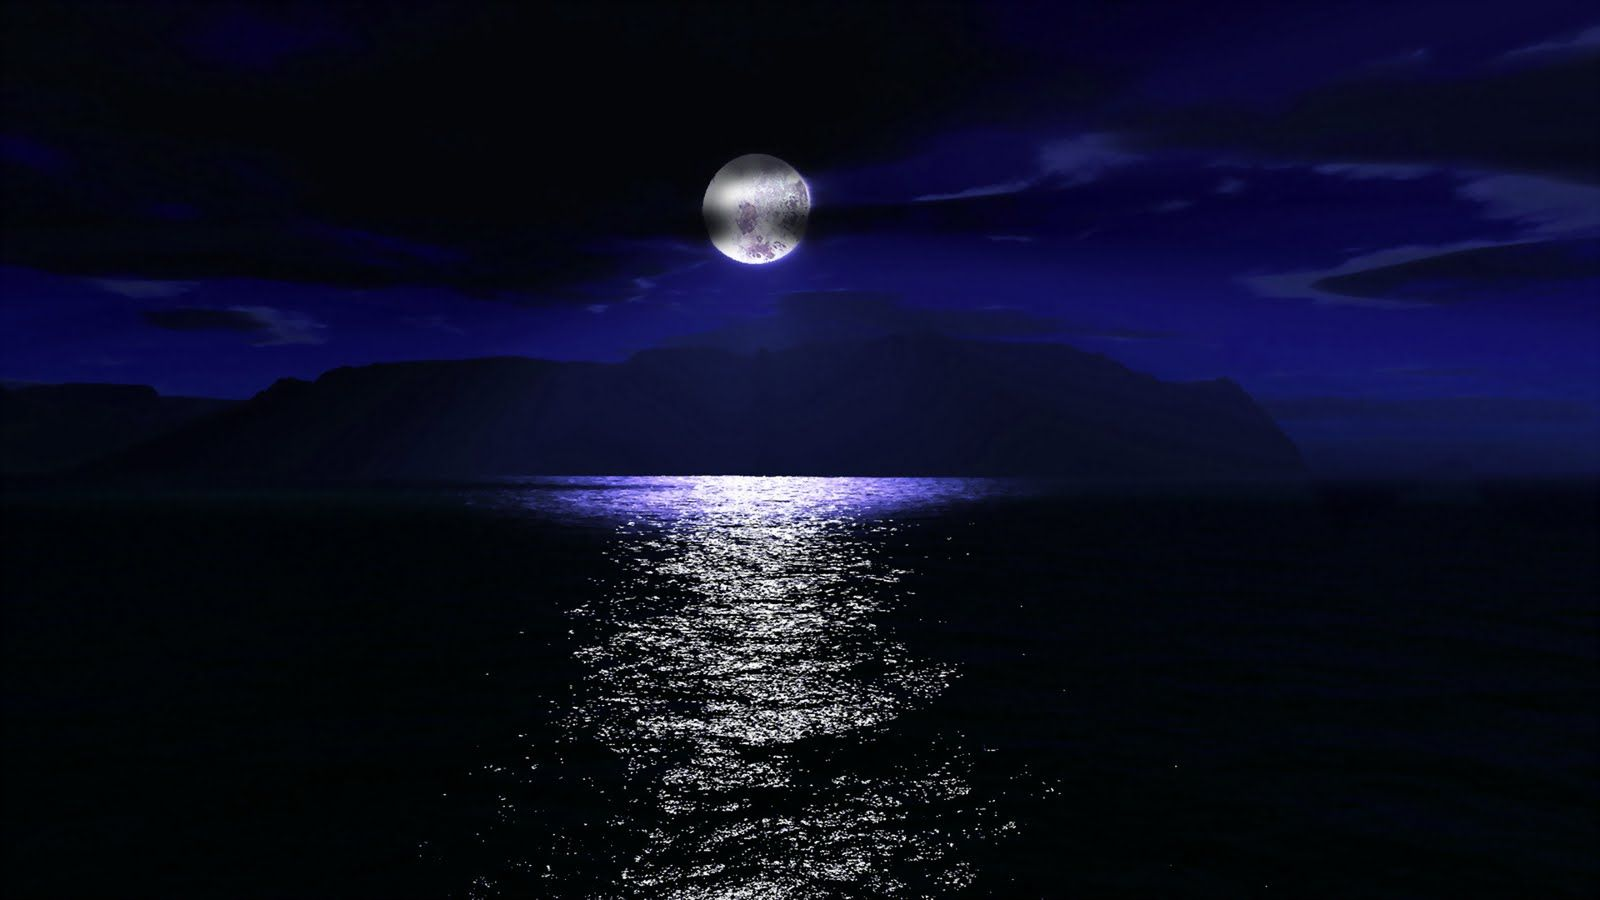 Sea Moon At Mid Night Wallpapers Hd Wallpapers Best Nature Wallpapers Moon Hd Backgrounds